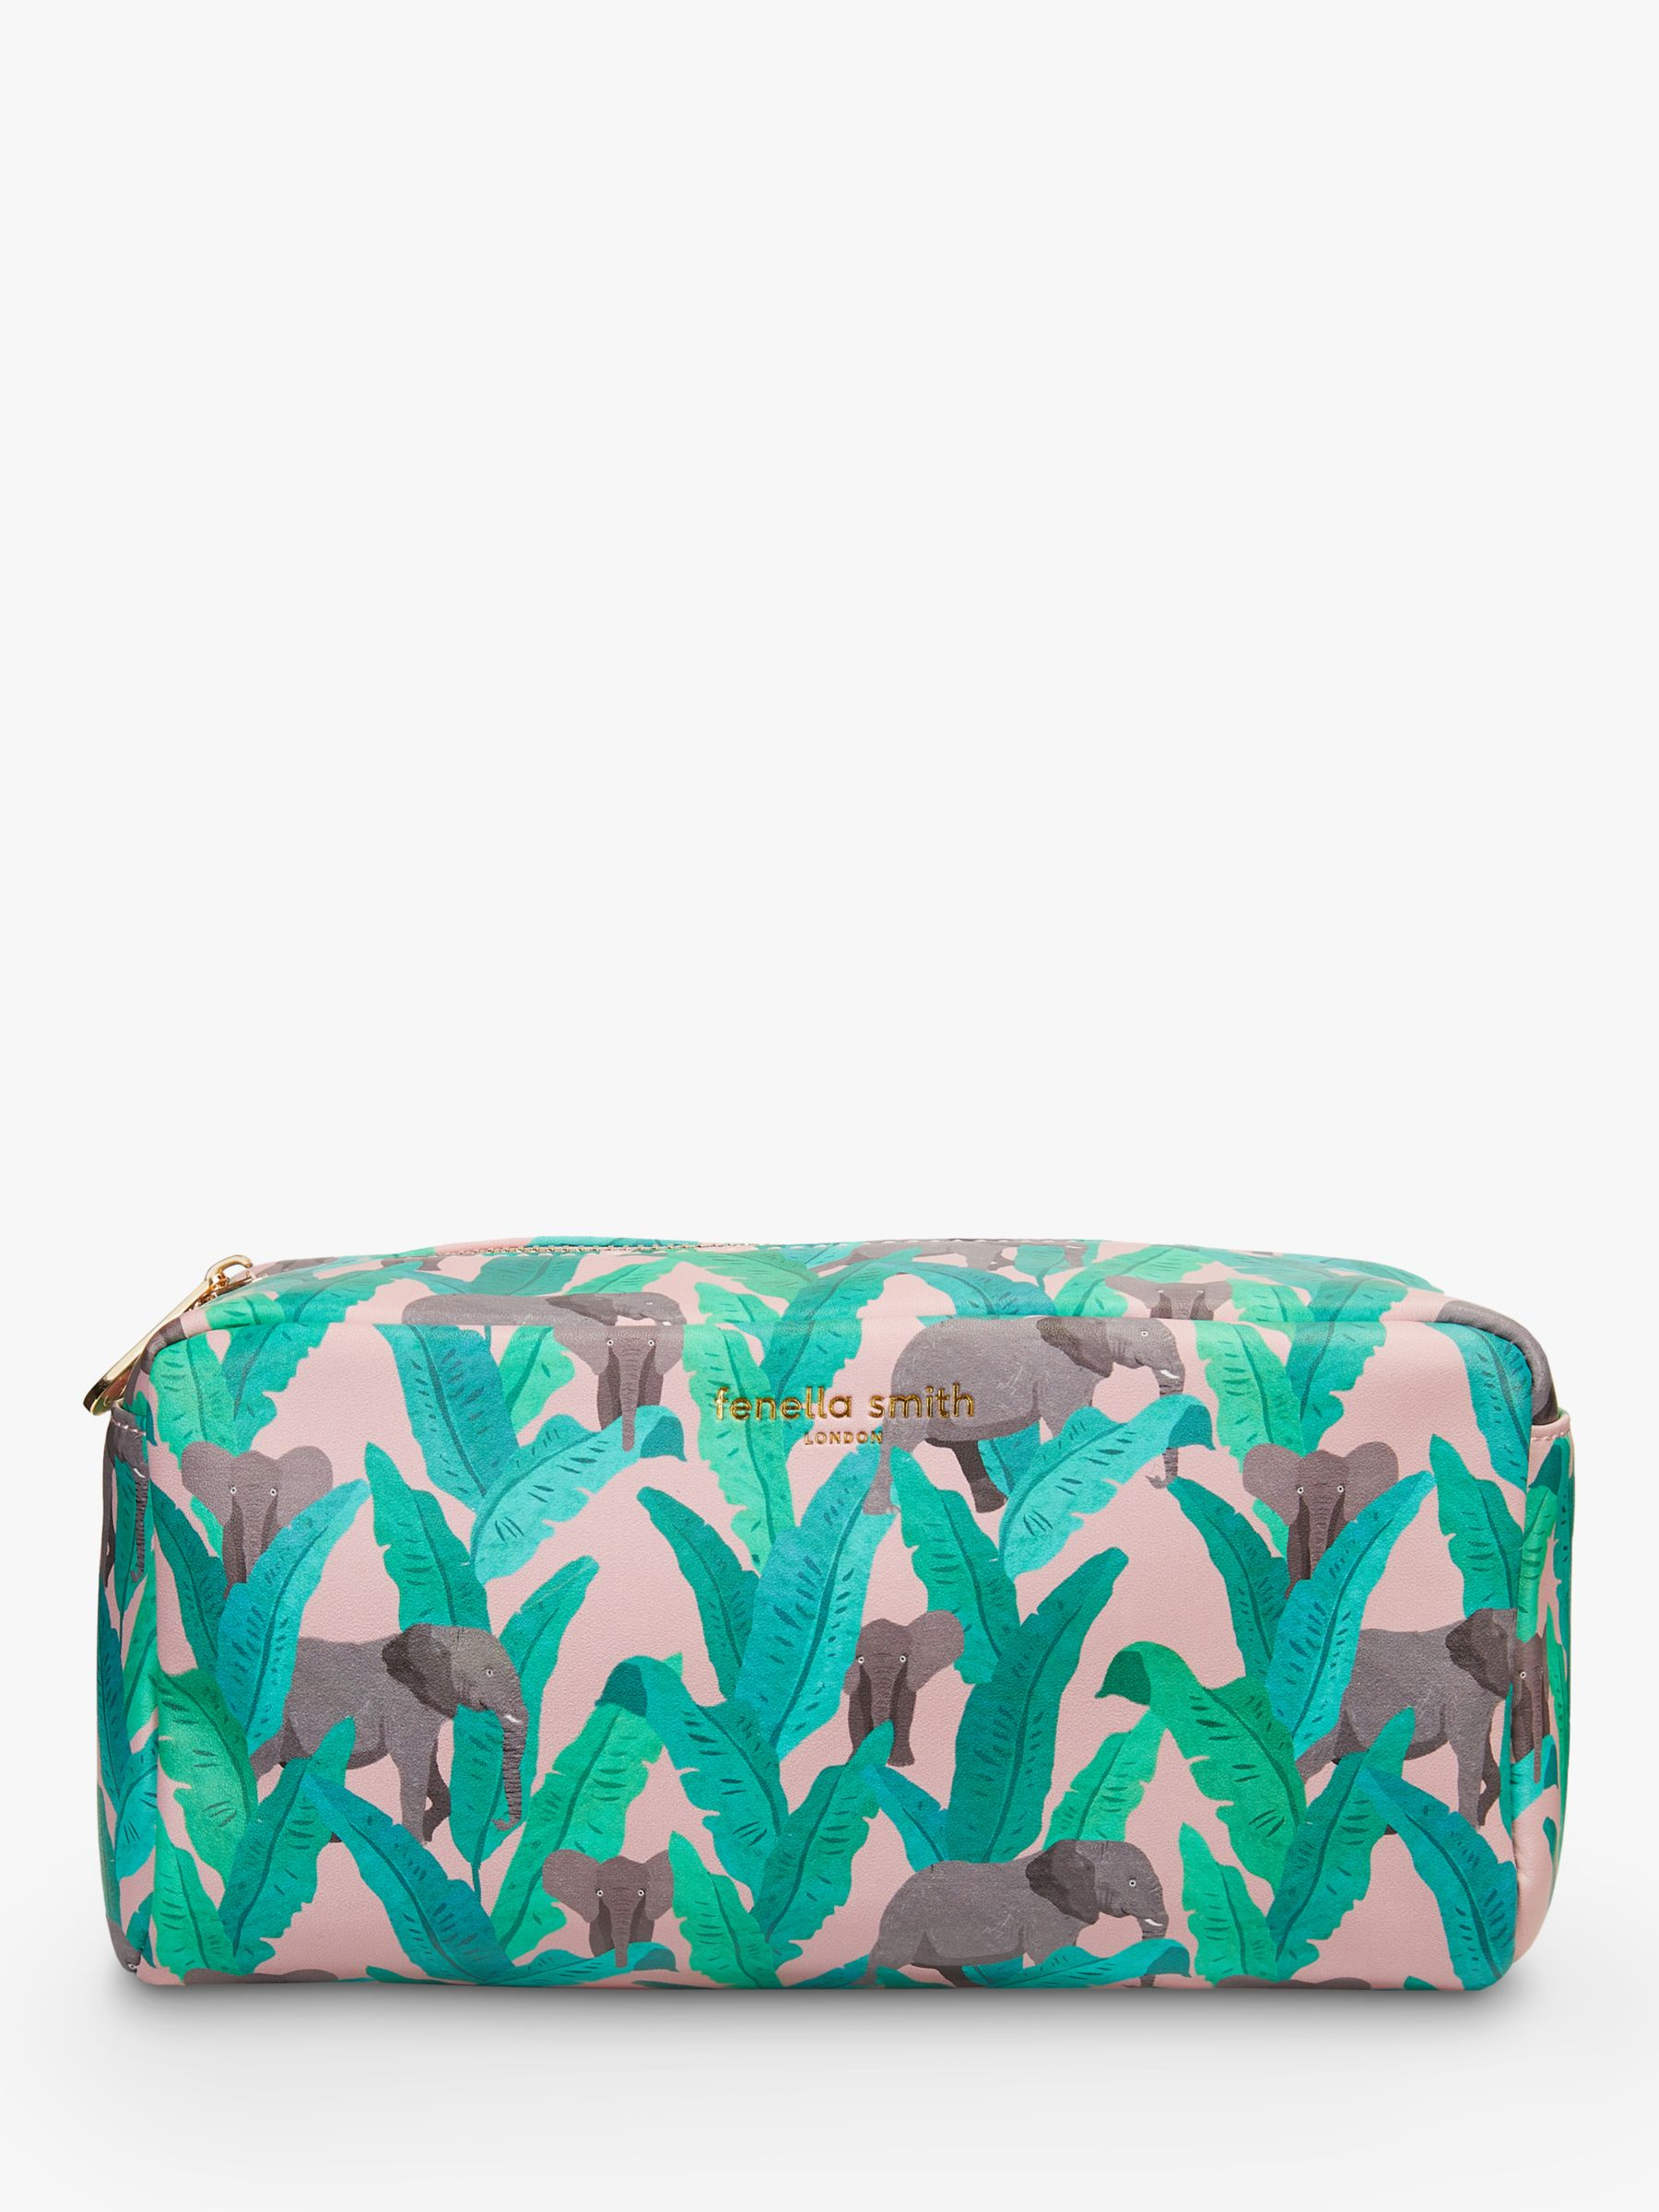 Fenella Smith Fenella Smith Elephant Box Wash Bag